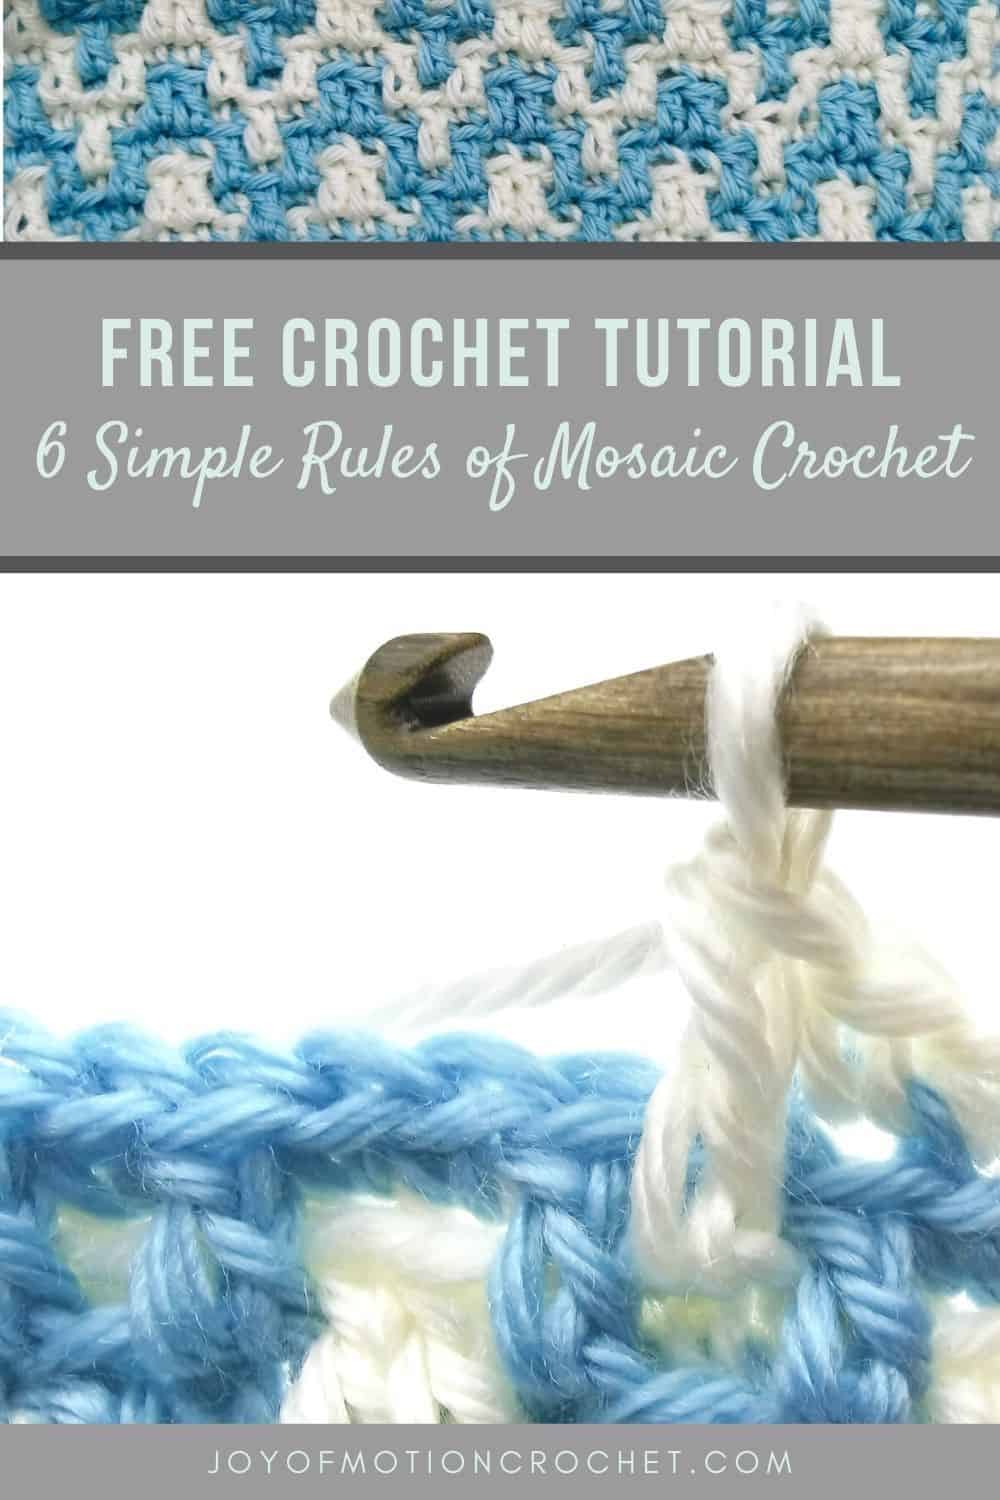 6 simple rules of mosaic crochet